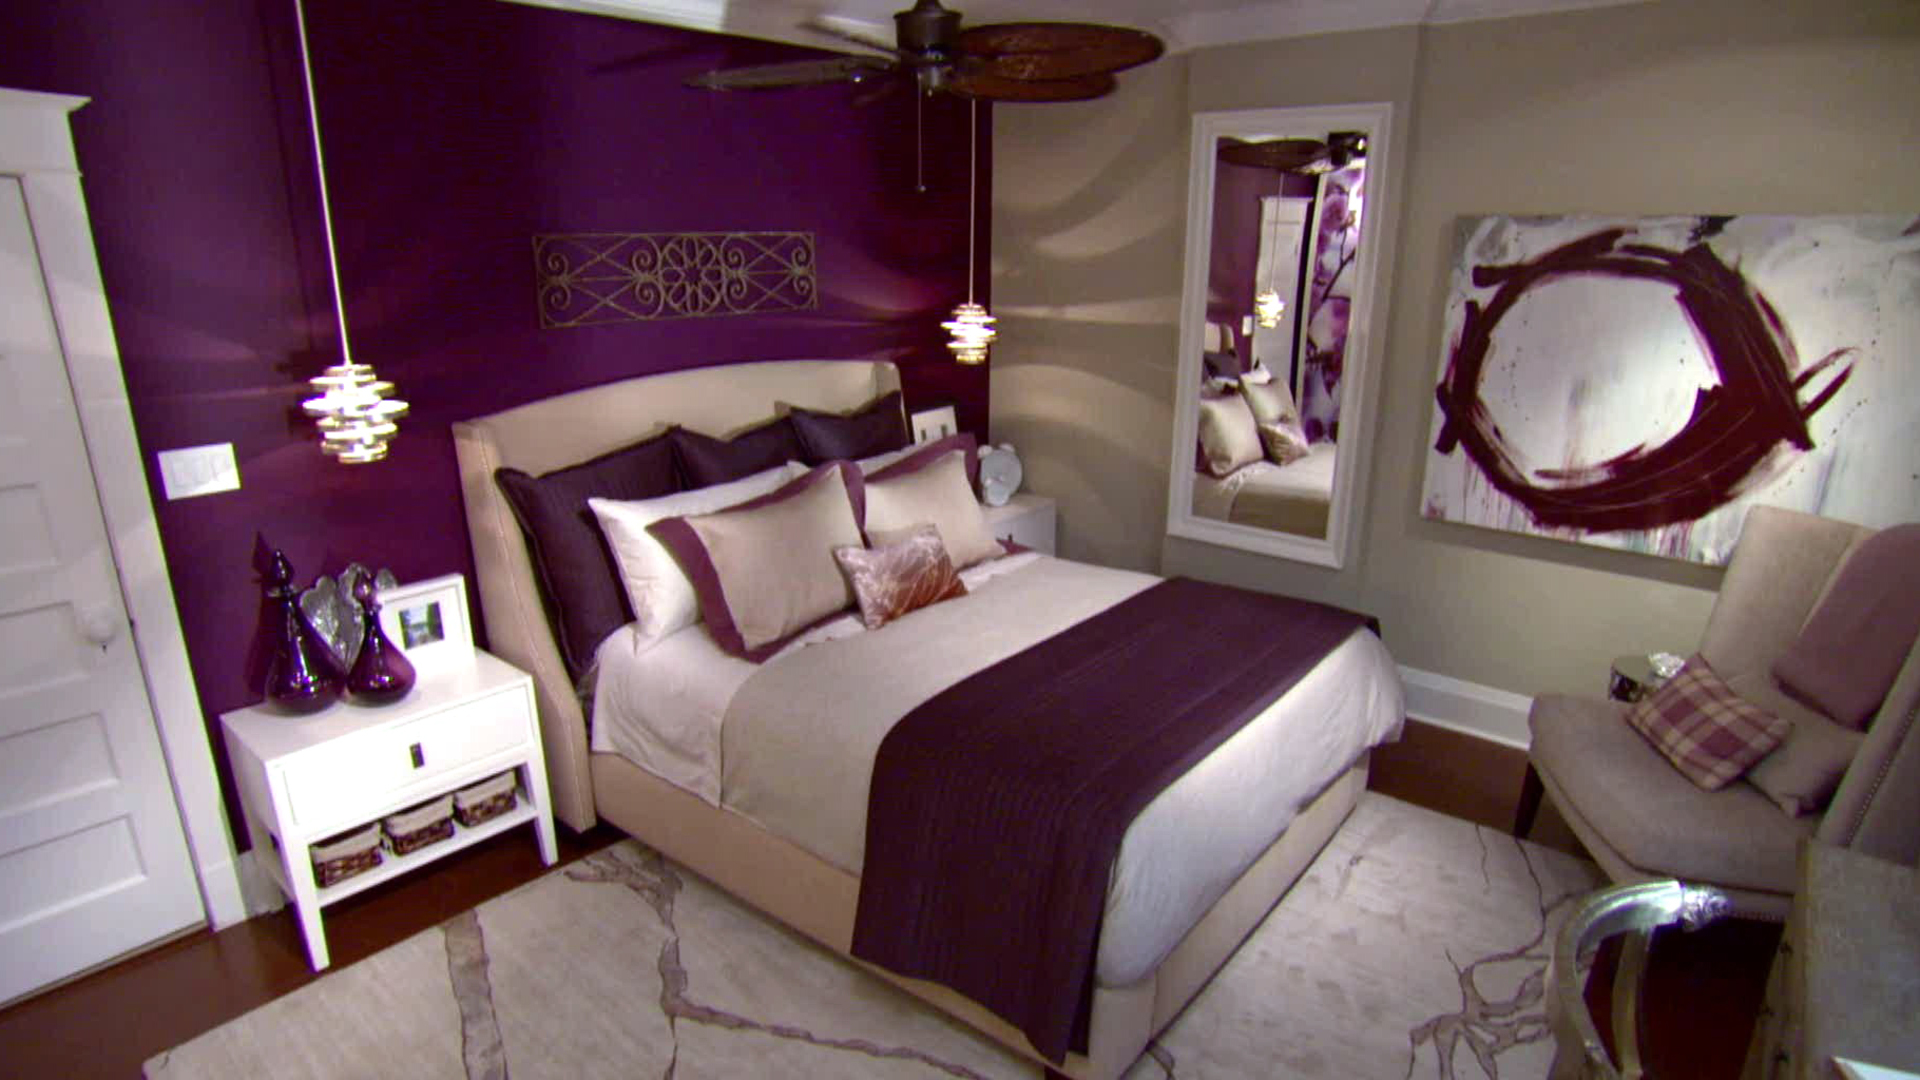 Bedroom Carpet Ideas: Pictures, Options & Ideas | HGTV